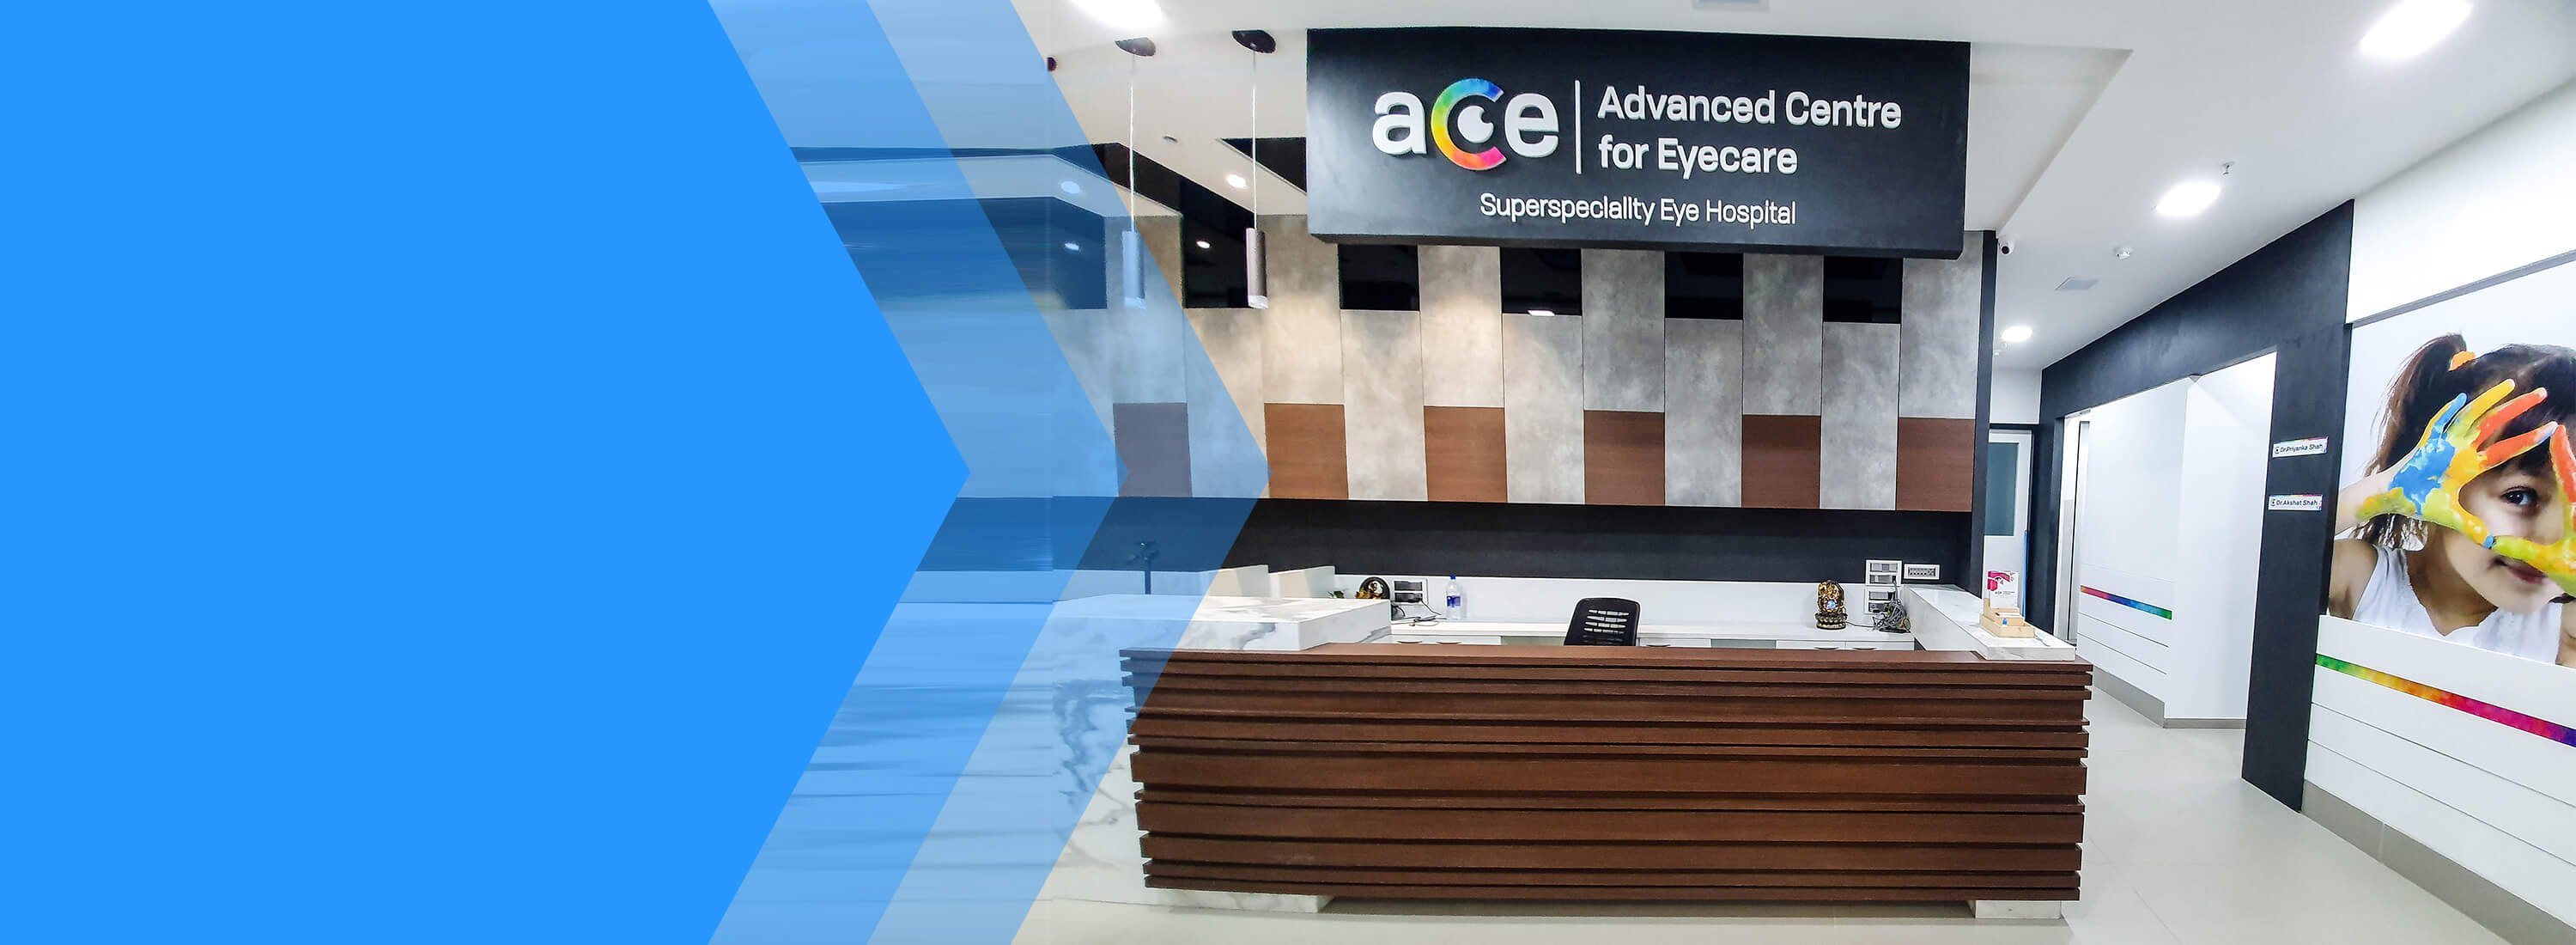 advance ace eye care center banner